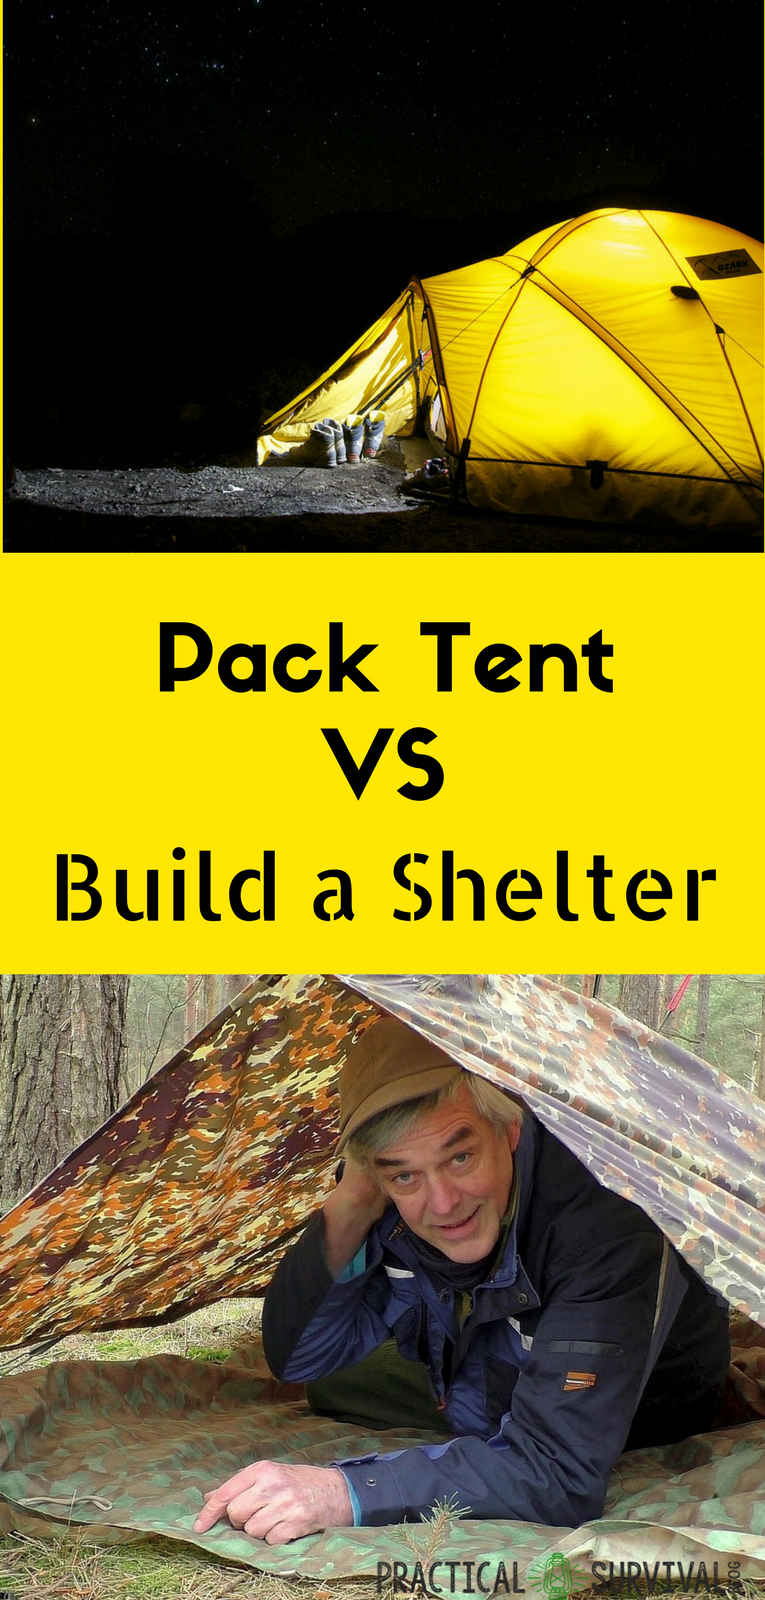 Shtf Shelter: Is It Best To Pack Shelter Or Build Along The Way When